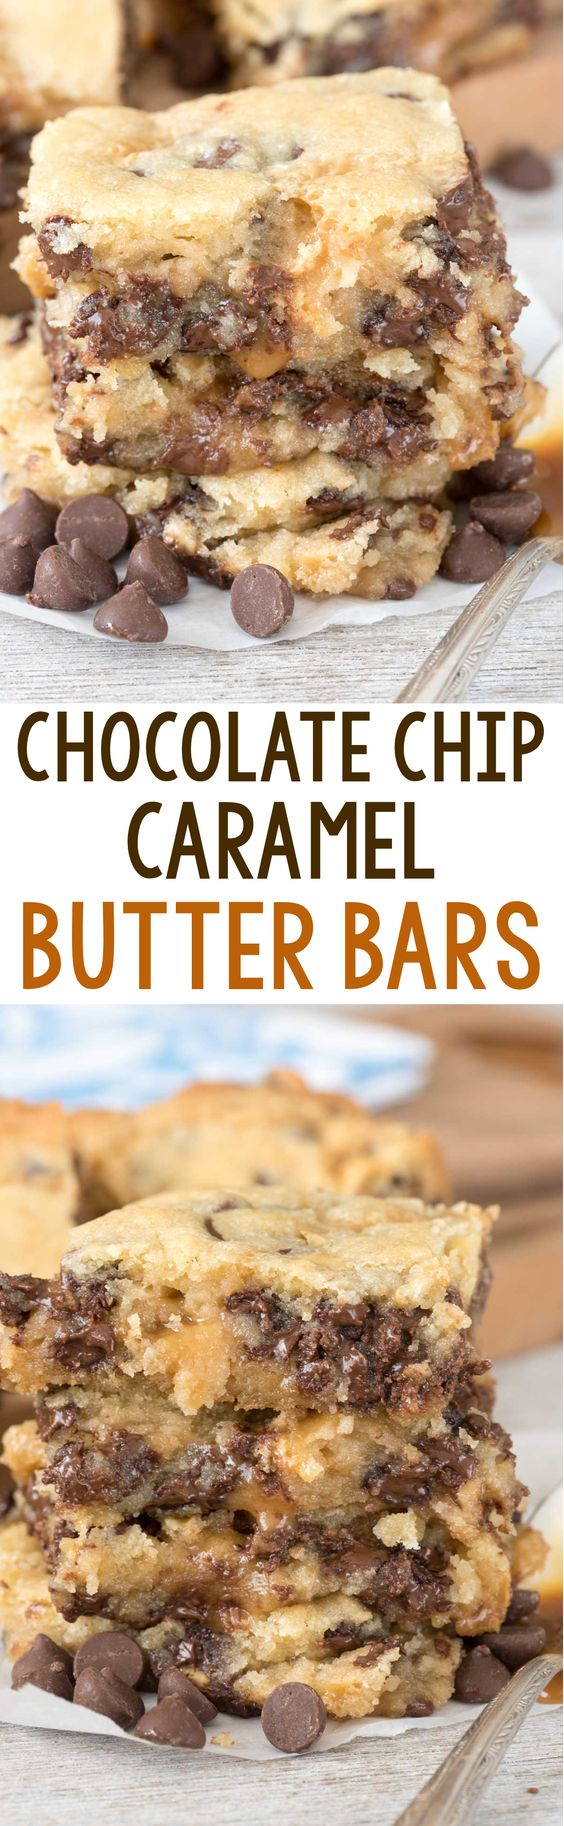 Chocolate Chip Caramel Butter Bars - easy sugar cookie bars filled with chocolate chips and sandwiched with gooey caramel sauce! These gooey bars are SO addicting.: